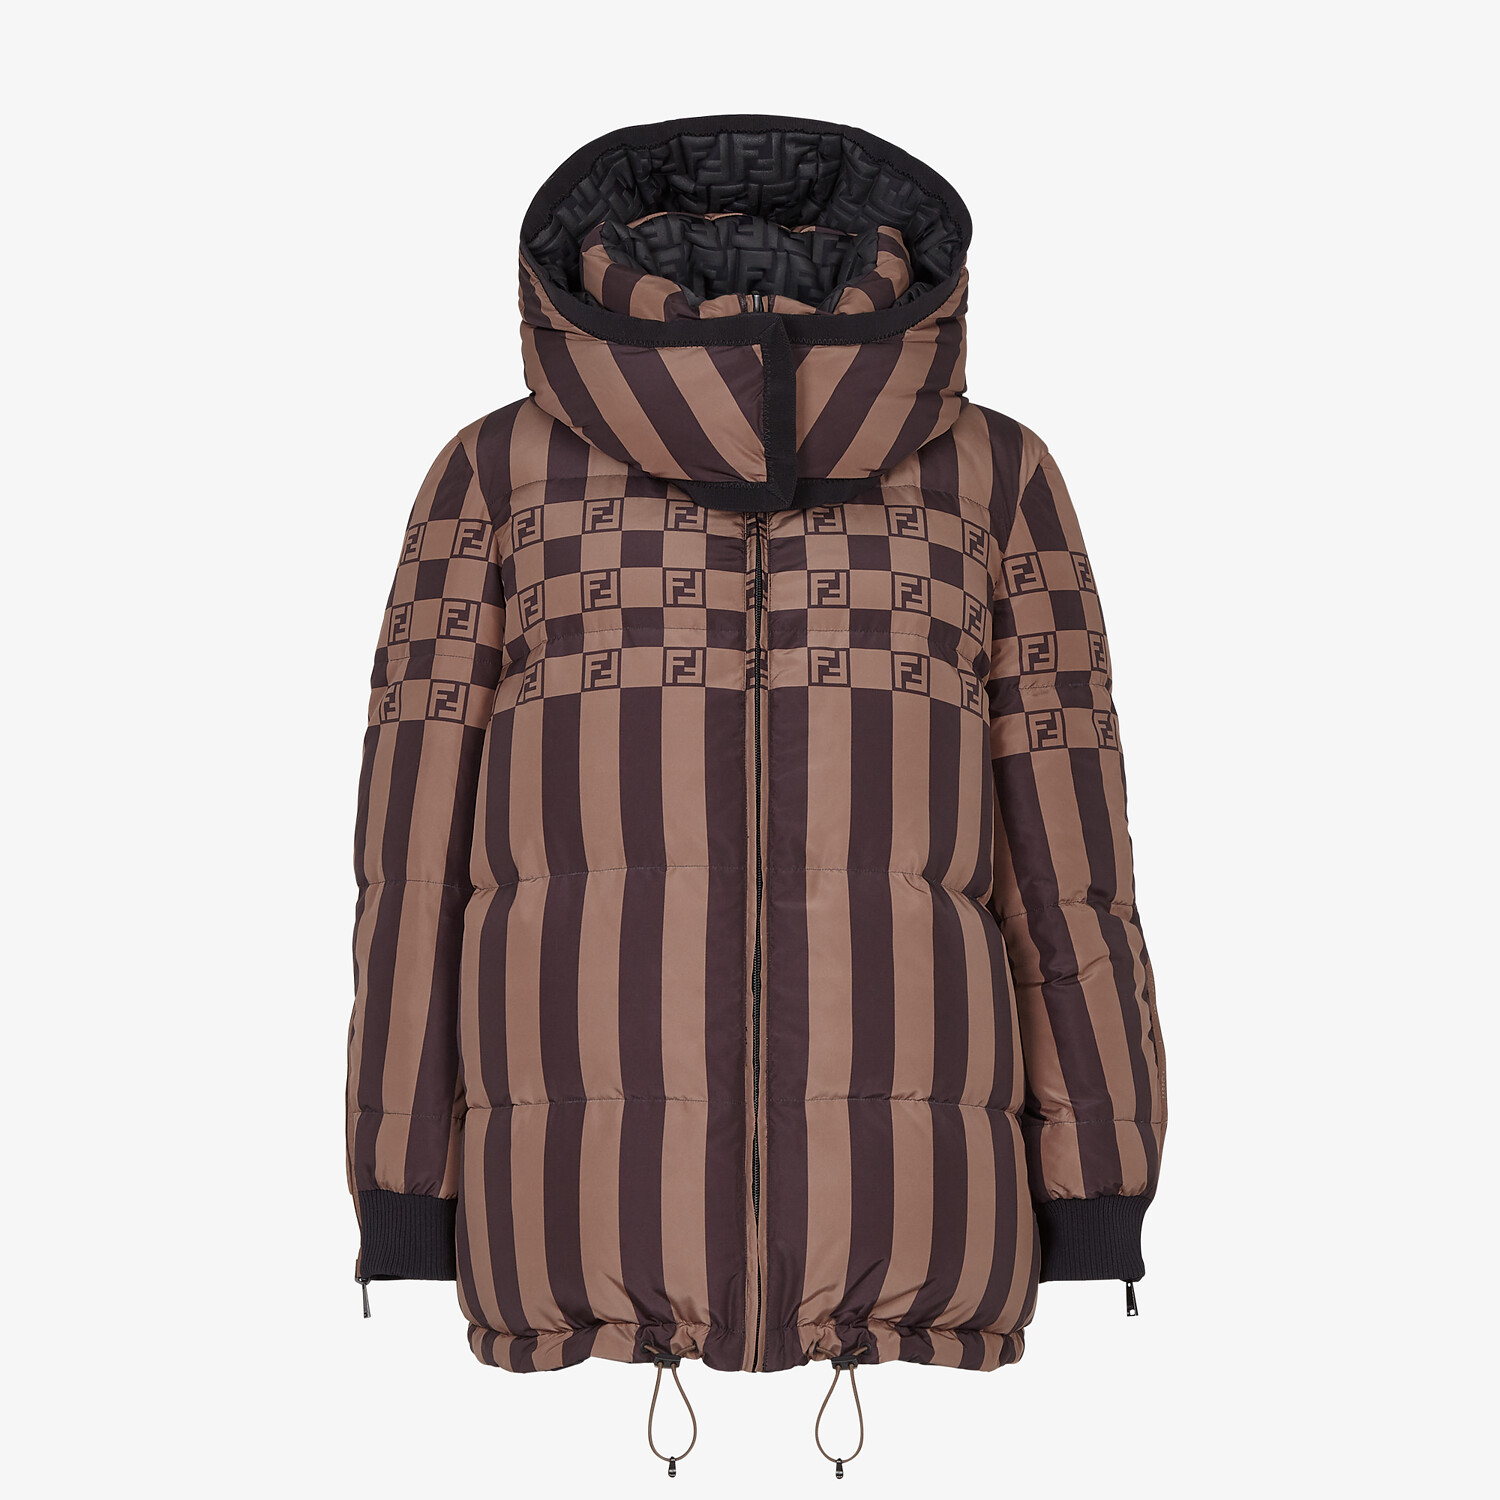 FENDI SKI JACKET - Ski jacket in black nylon - view 4 detail